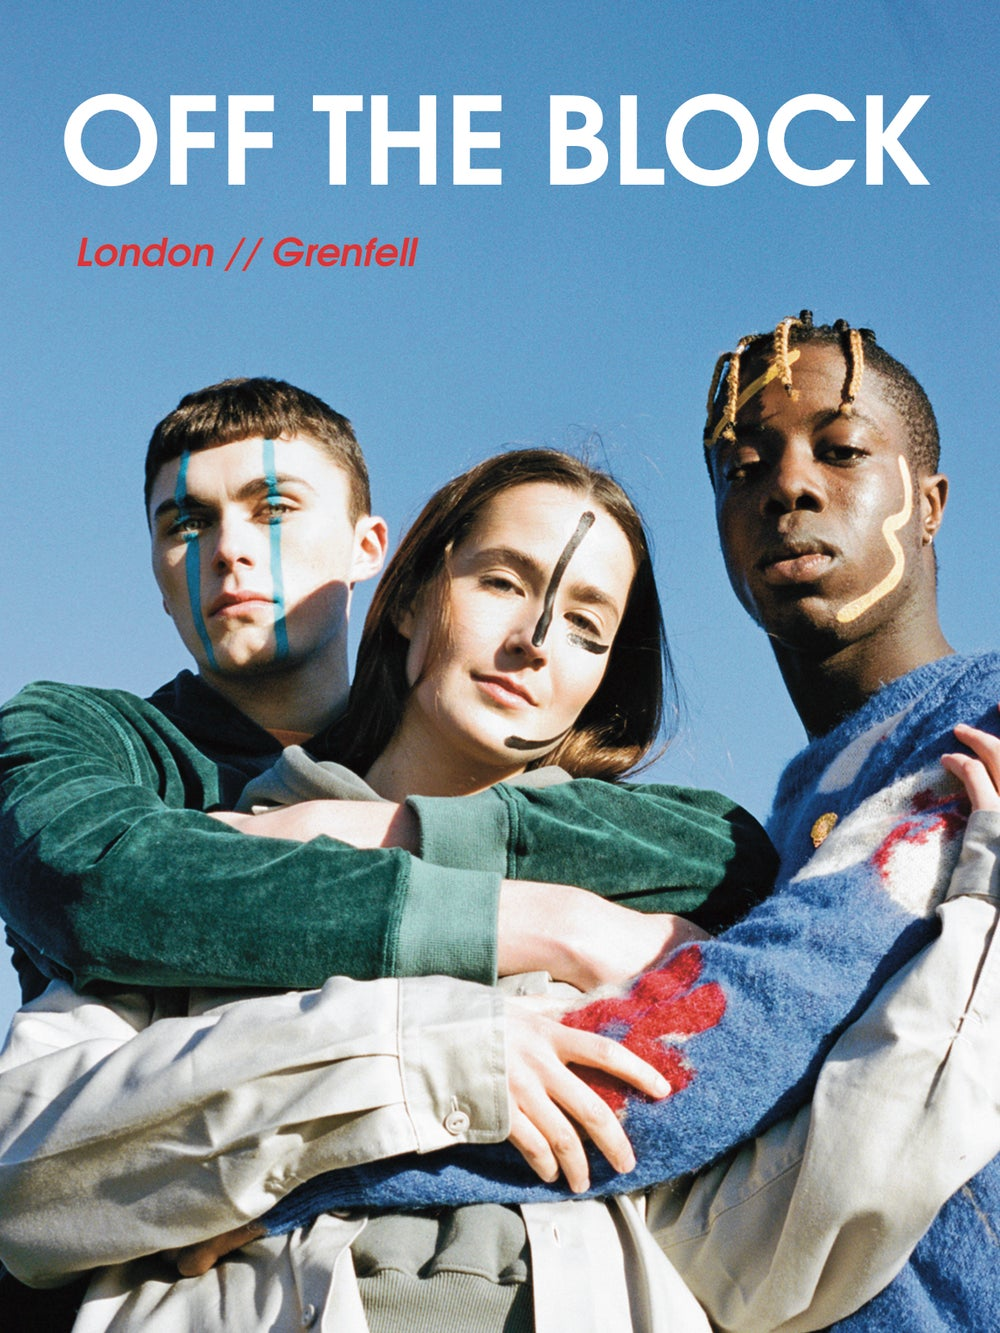 Image of Off The Block Issue #1: London // Grenfell